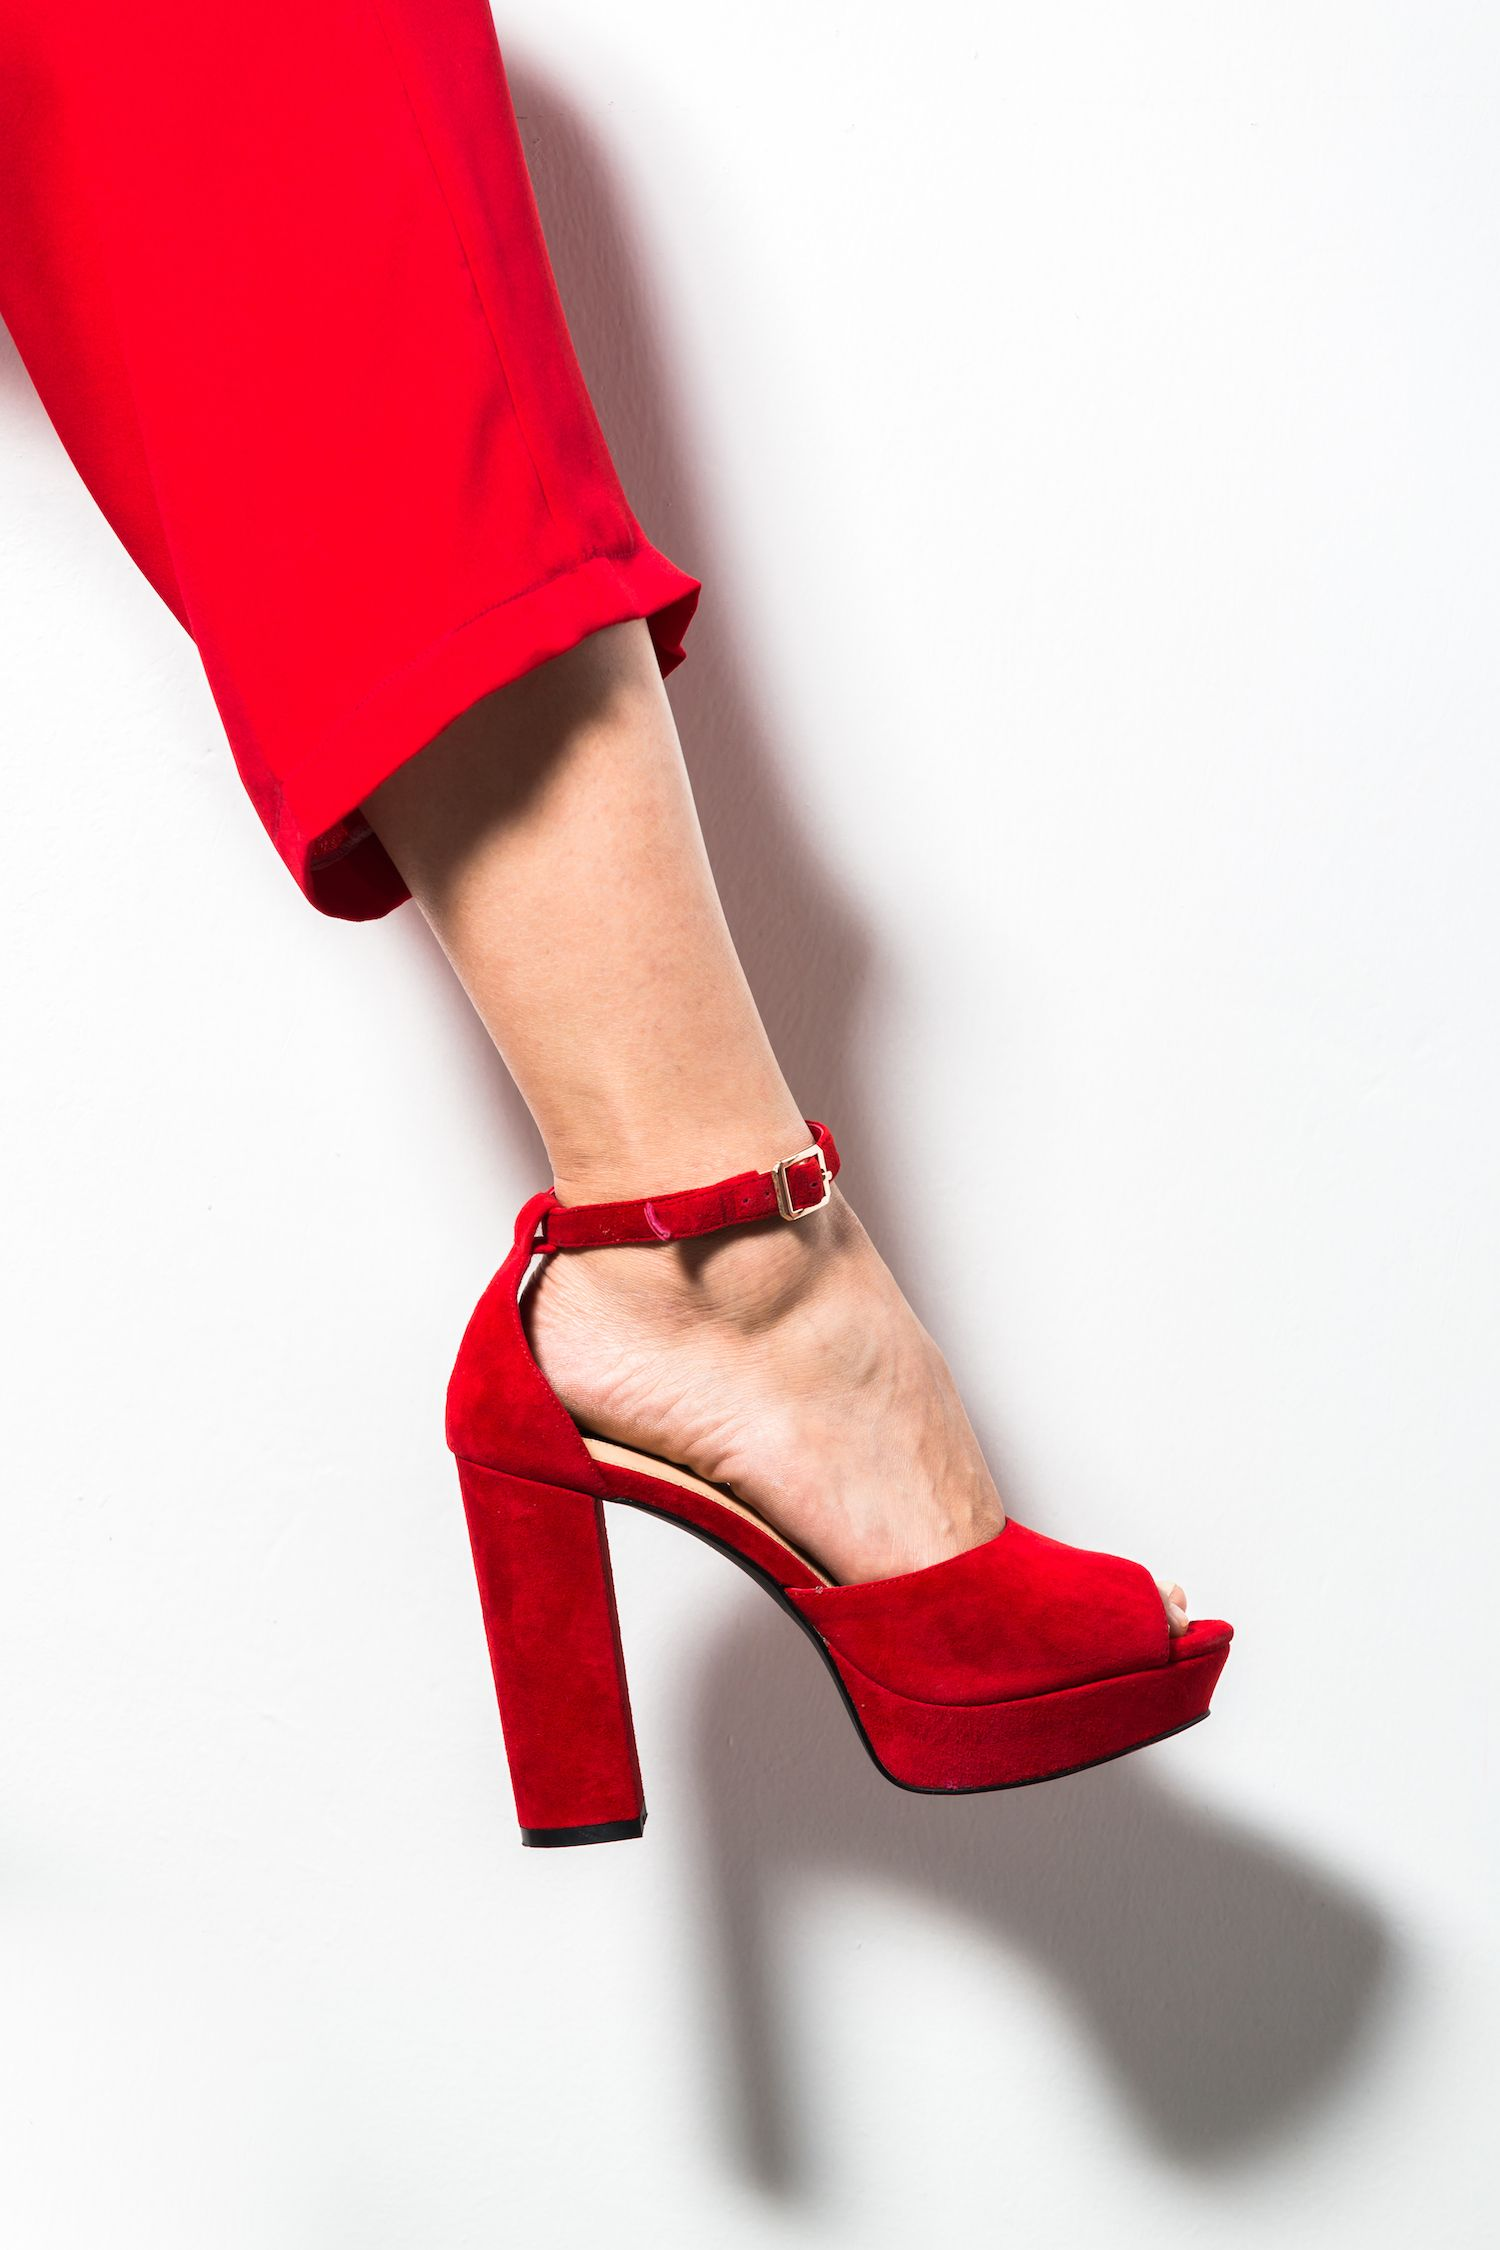 fb5a4ef533f Spicy red suede platform perfect shoes for sunday brunch jpg 1500x2250  Sunday shoes red